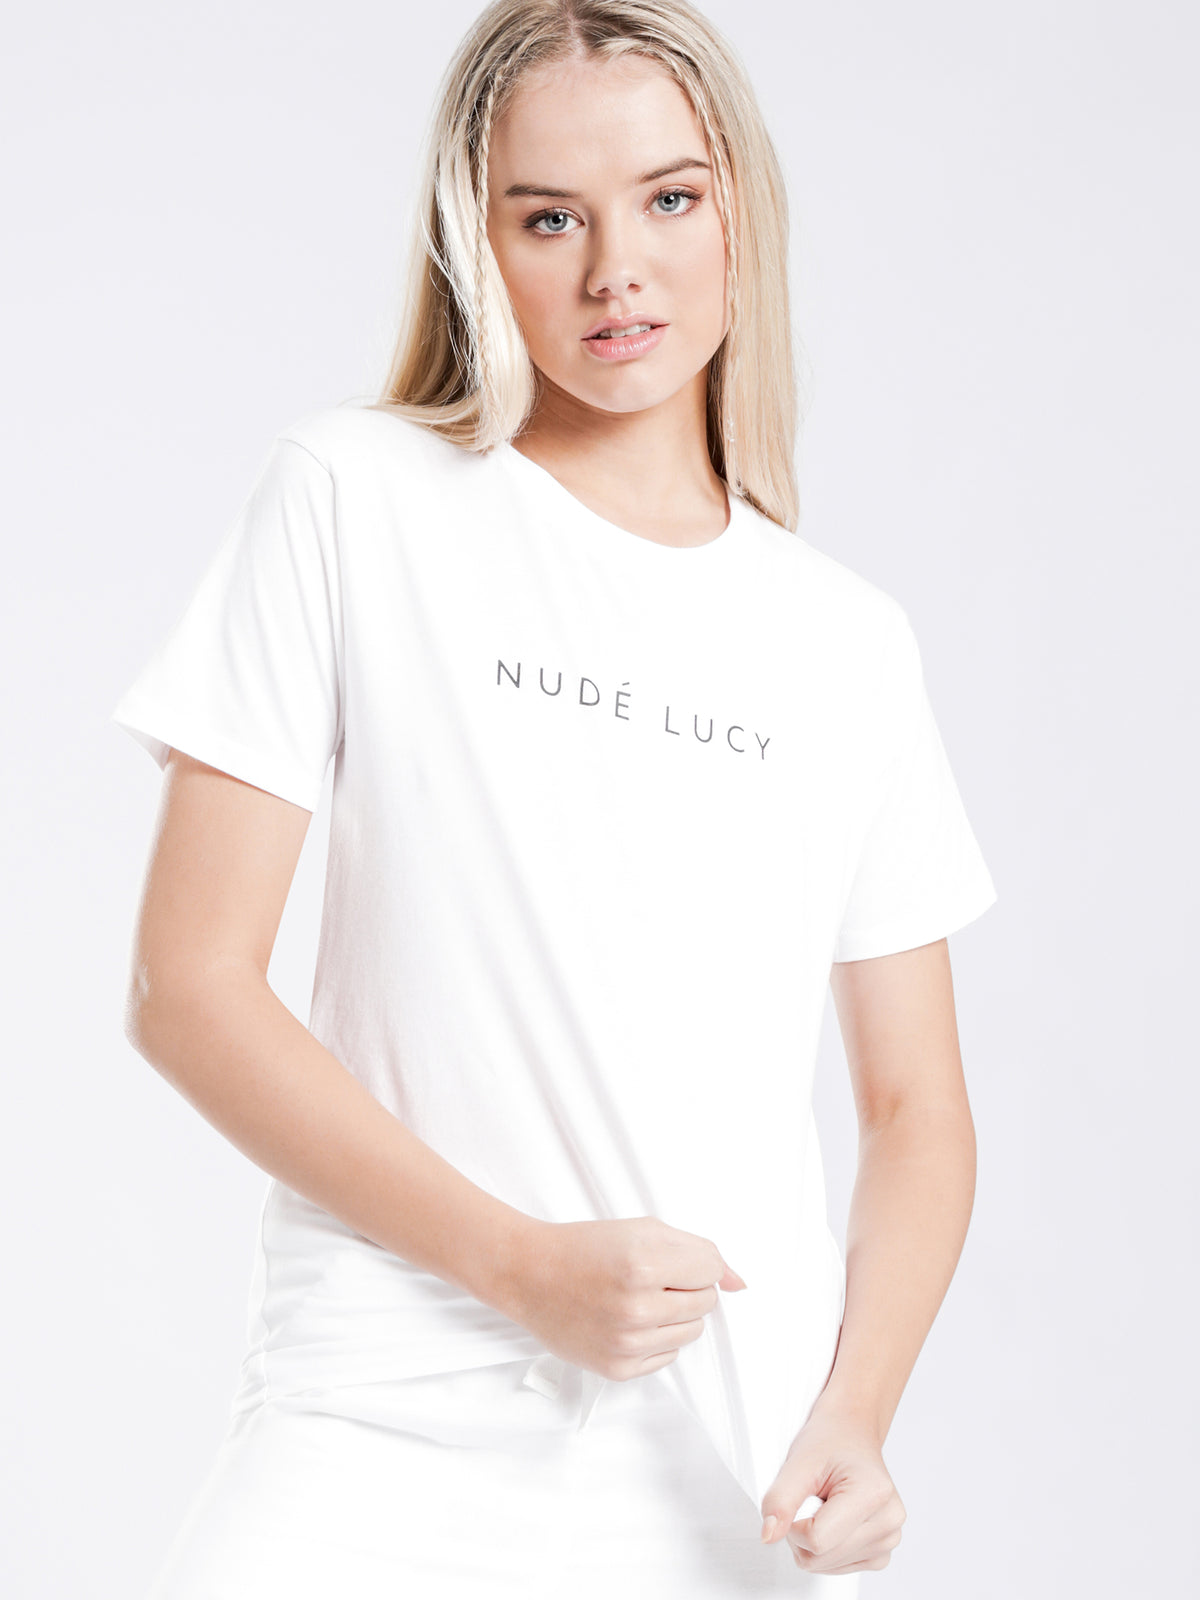 Nude Lucy Slogan T-Shirt in White